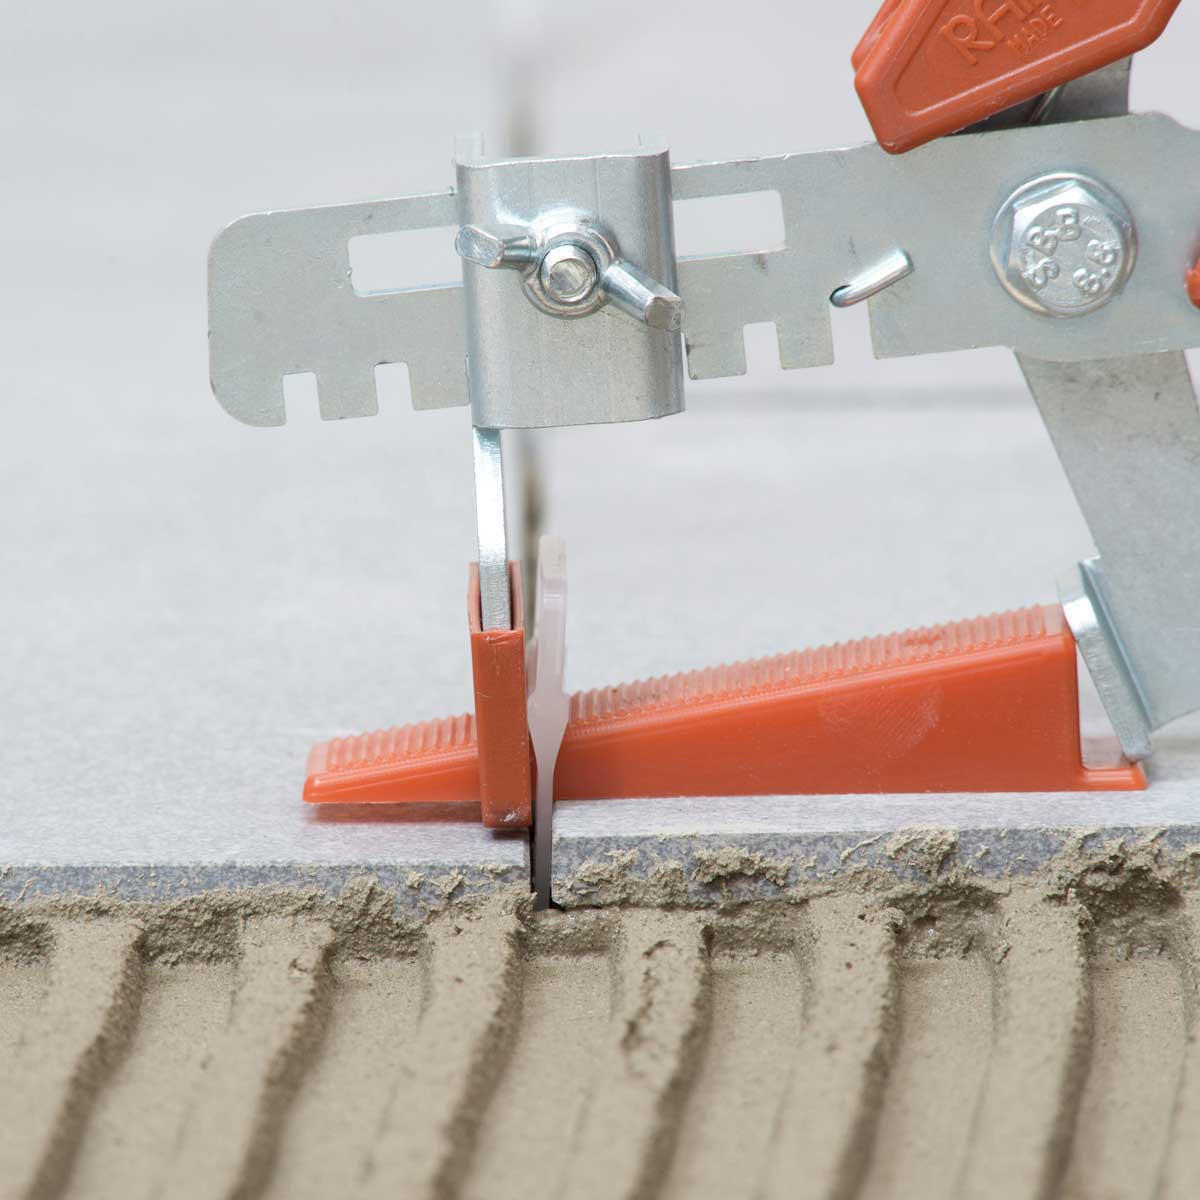 raimondi wedge installation with pliers